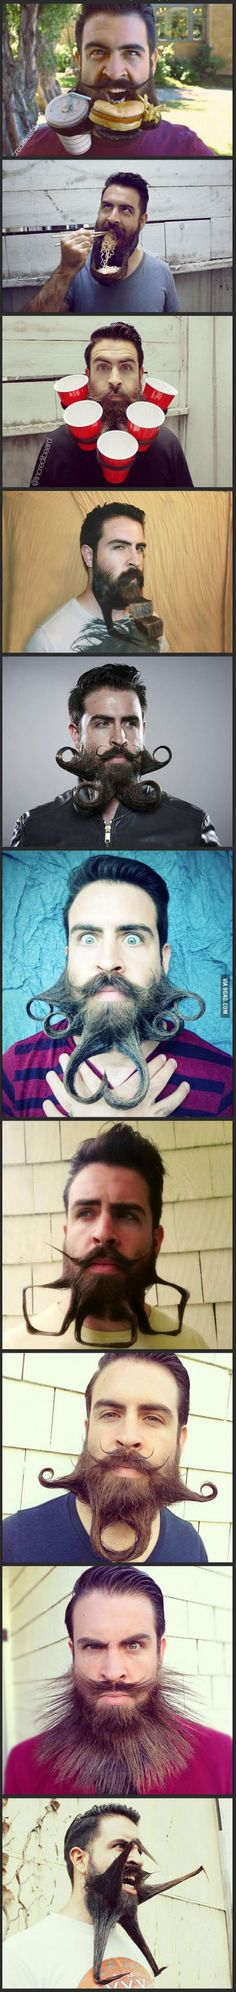 Mr Incredibeard Is Back With New Epic Beards Beard Styles Epic - Mr incredibeard really coolest beard ever seen